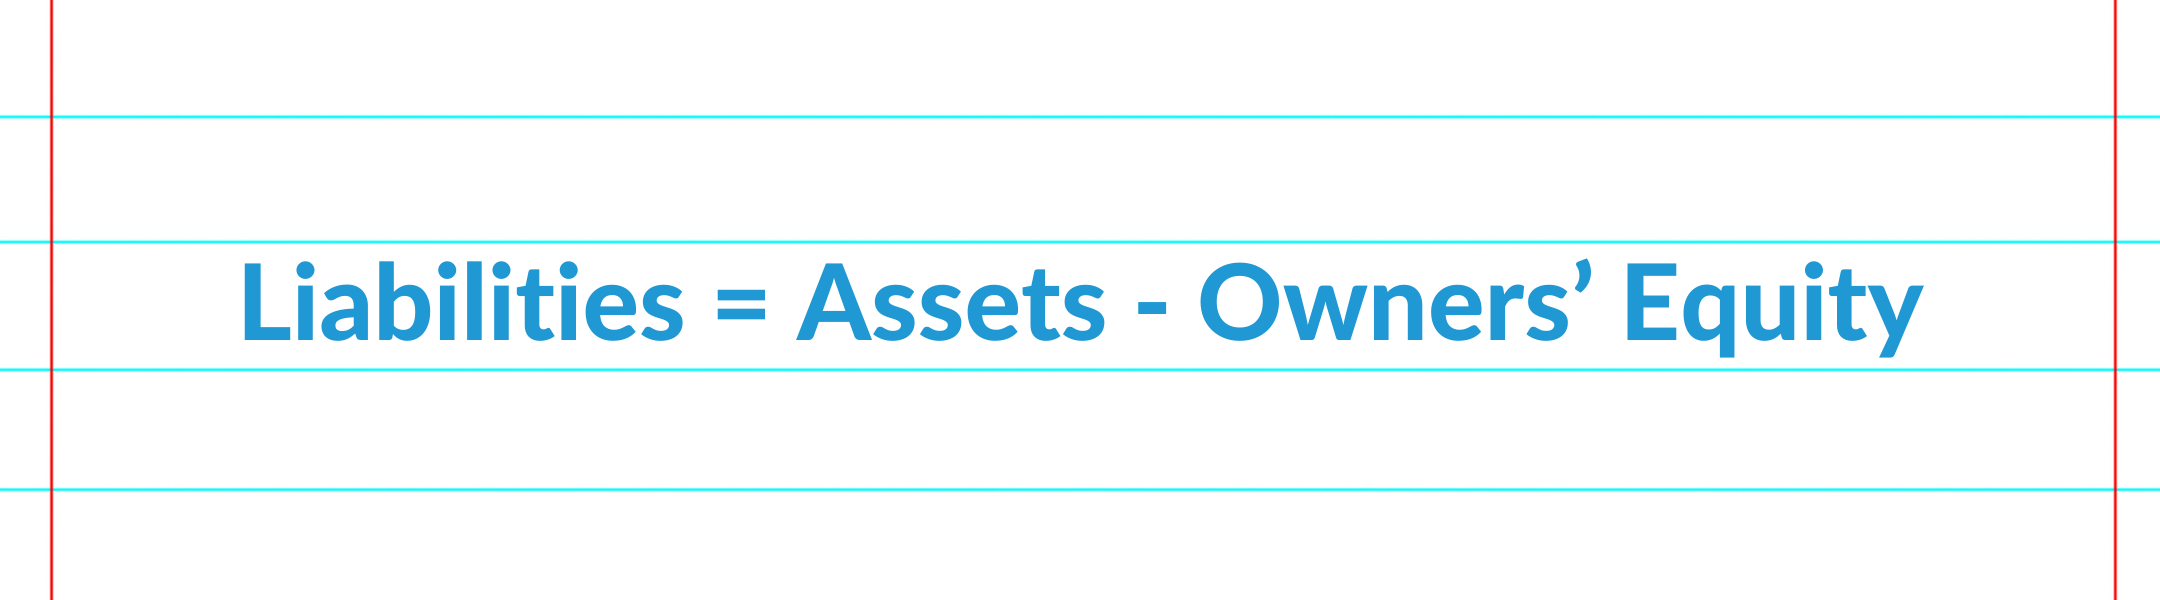 What are Liabilities on a Balance Sheet?